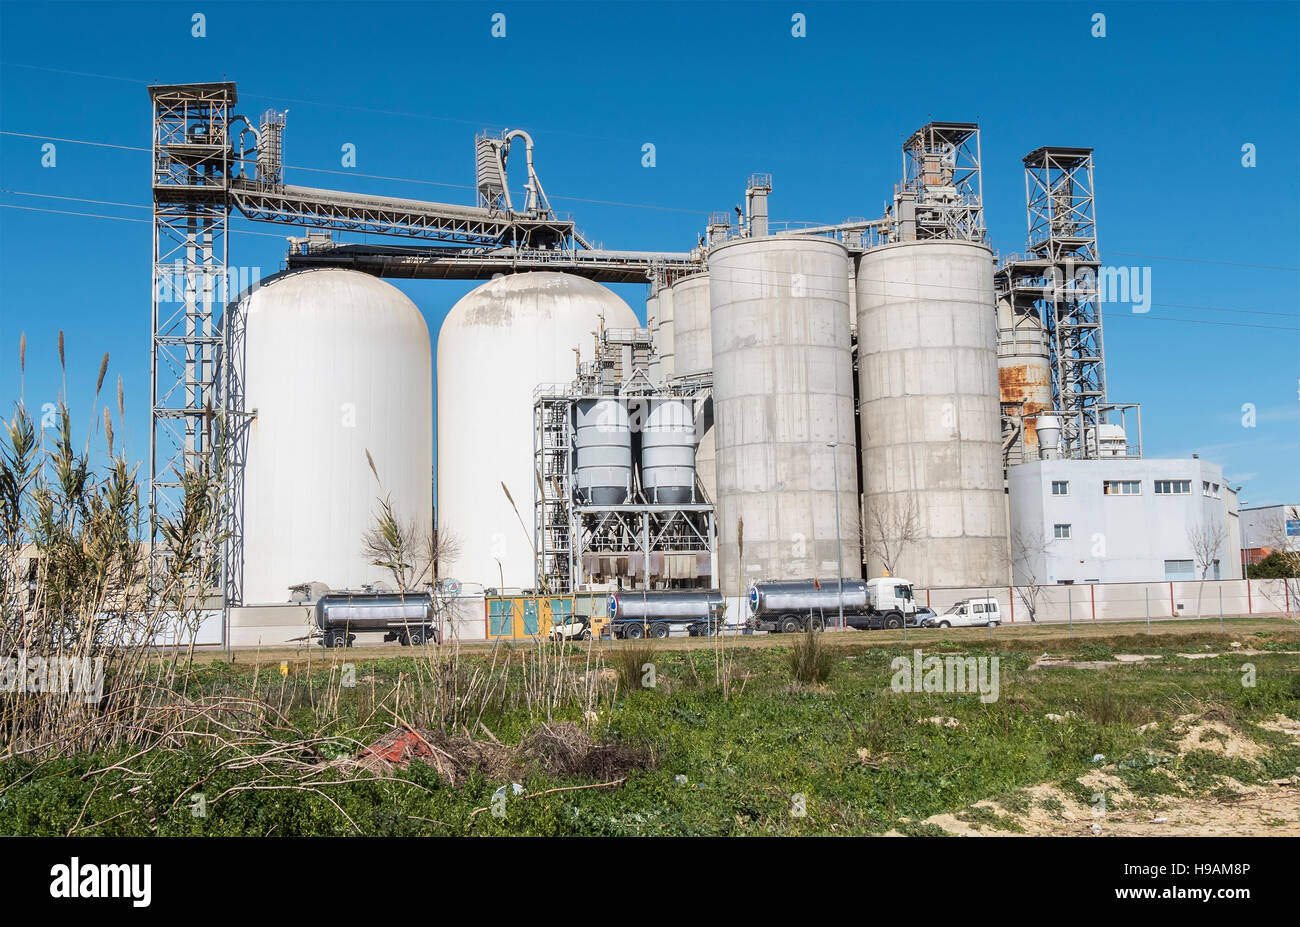 Factory, industrial buildings, environment Stock Photo